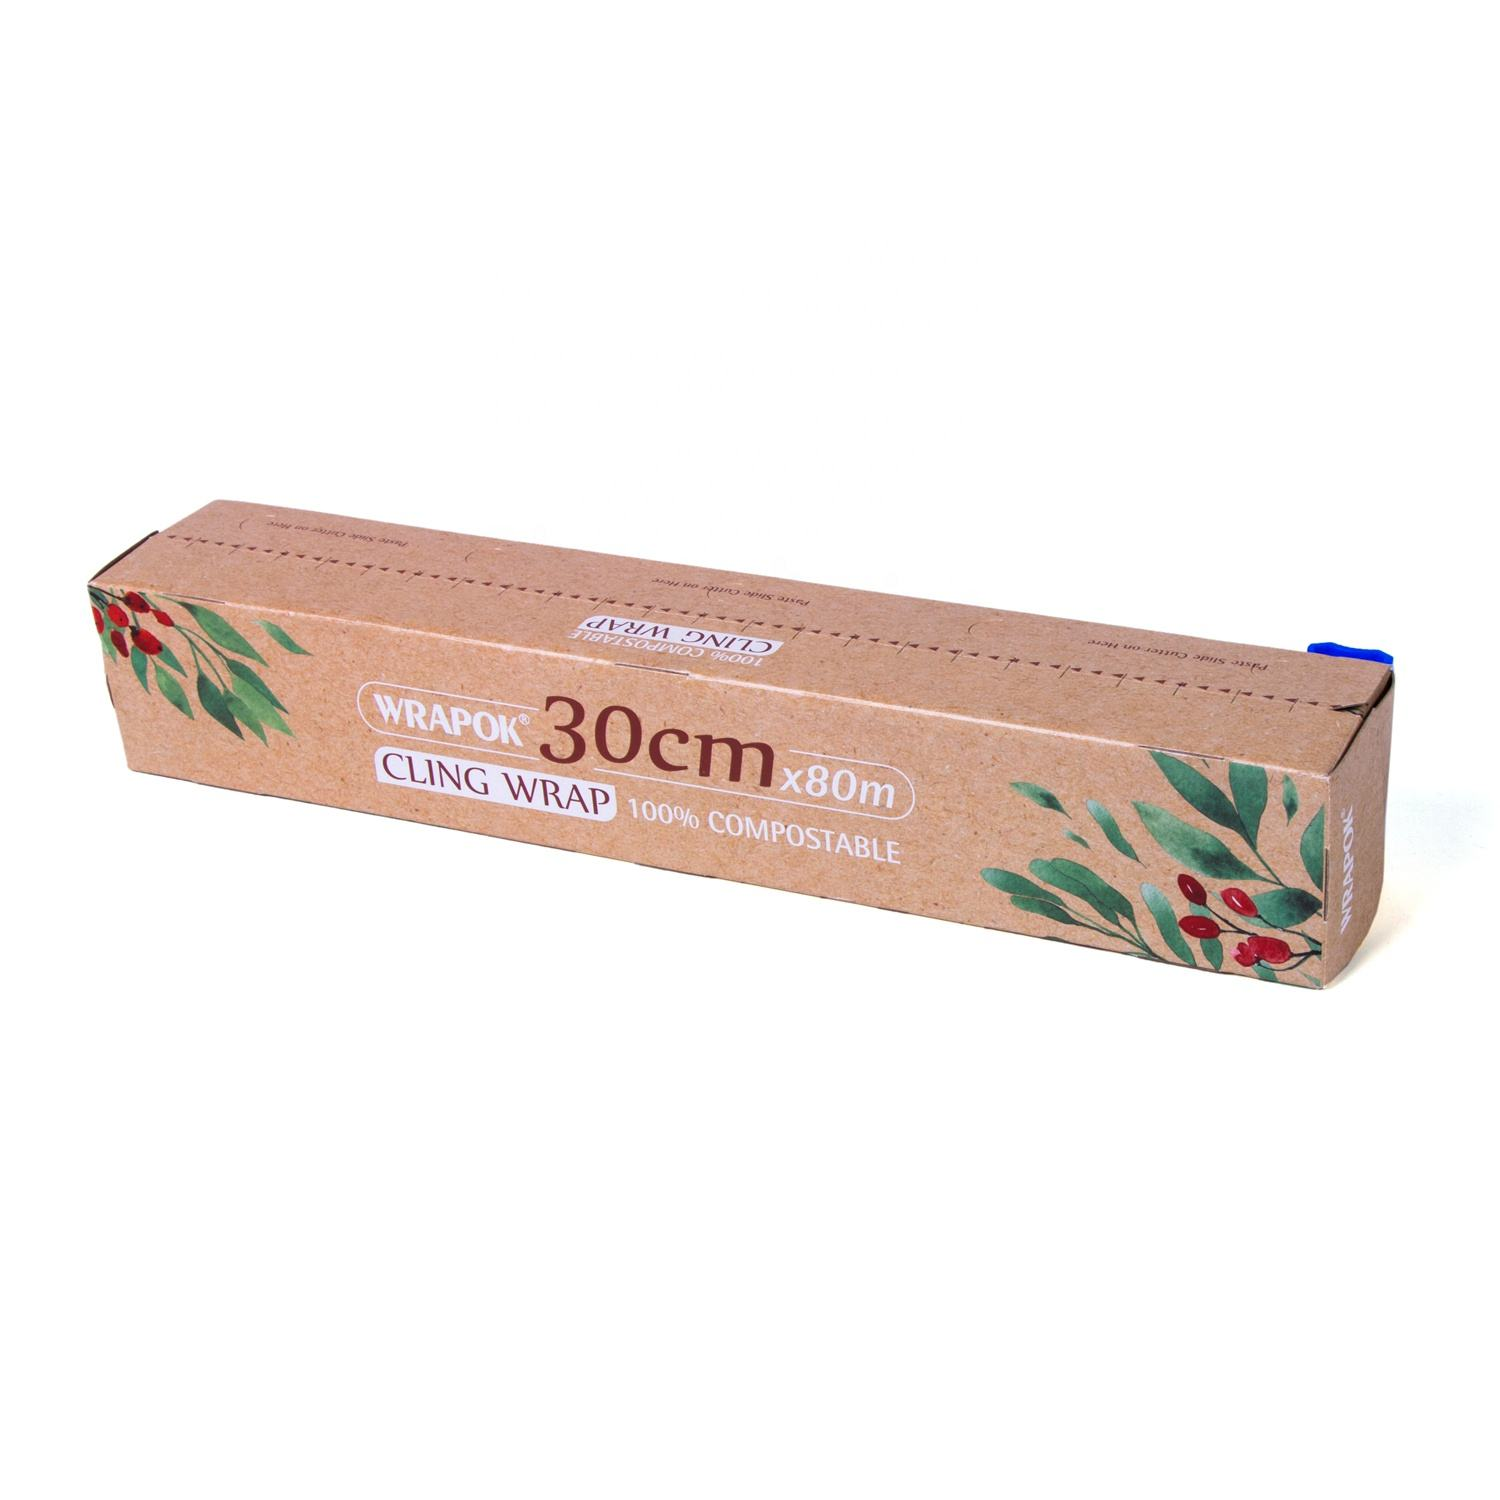 Household PLA Compostable Eco Friendly Biodegradable Cling Film Wrap